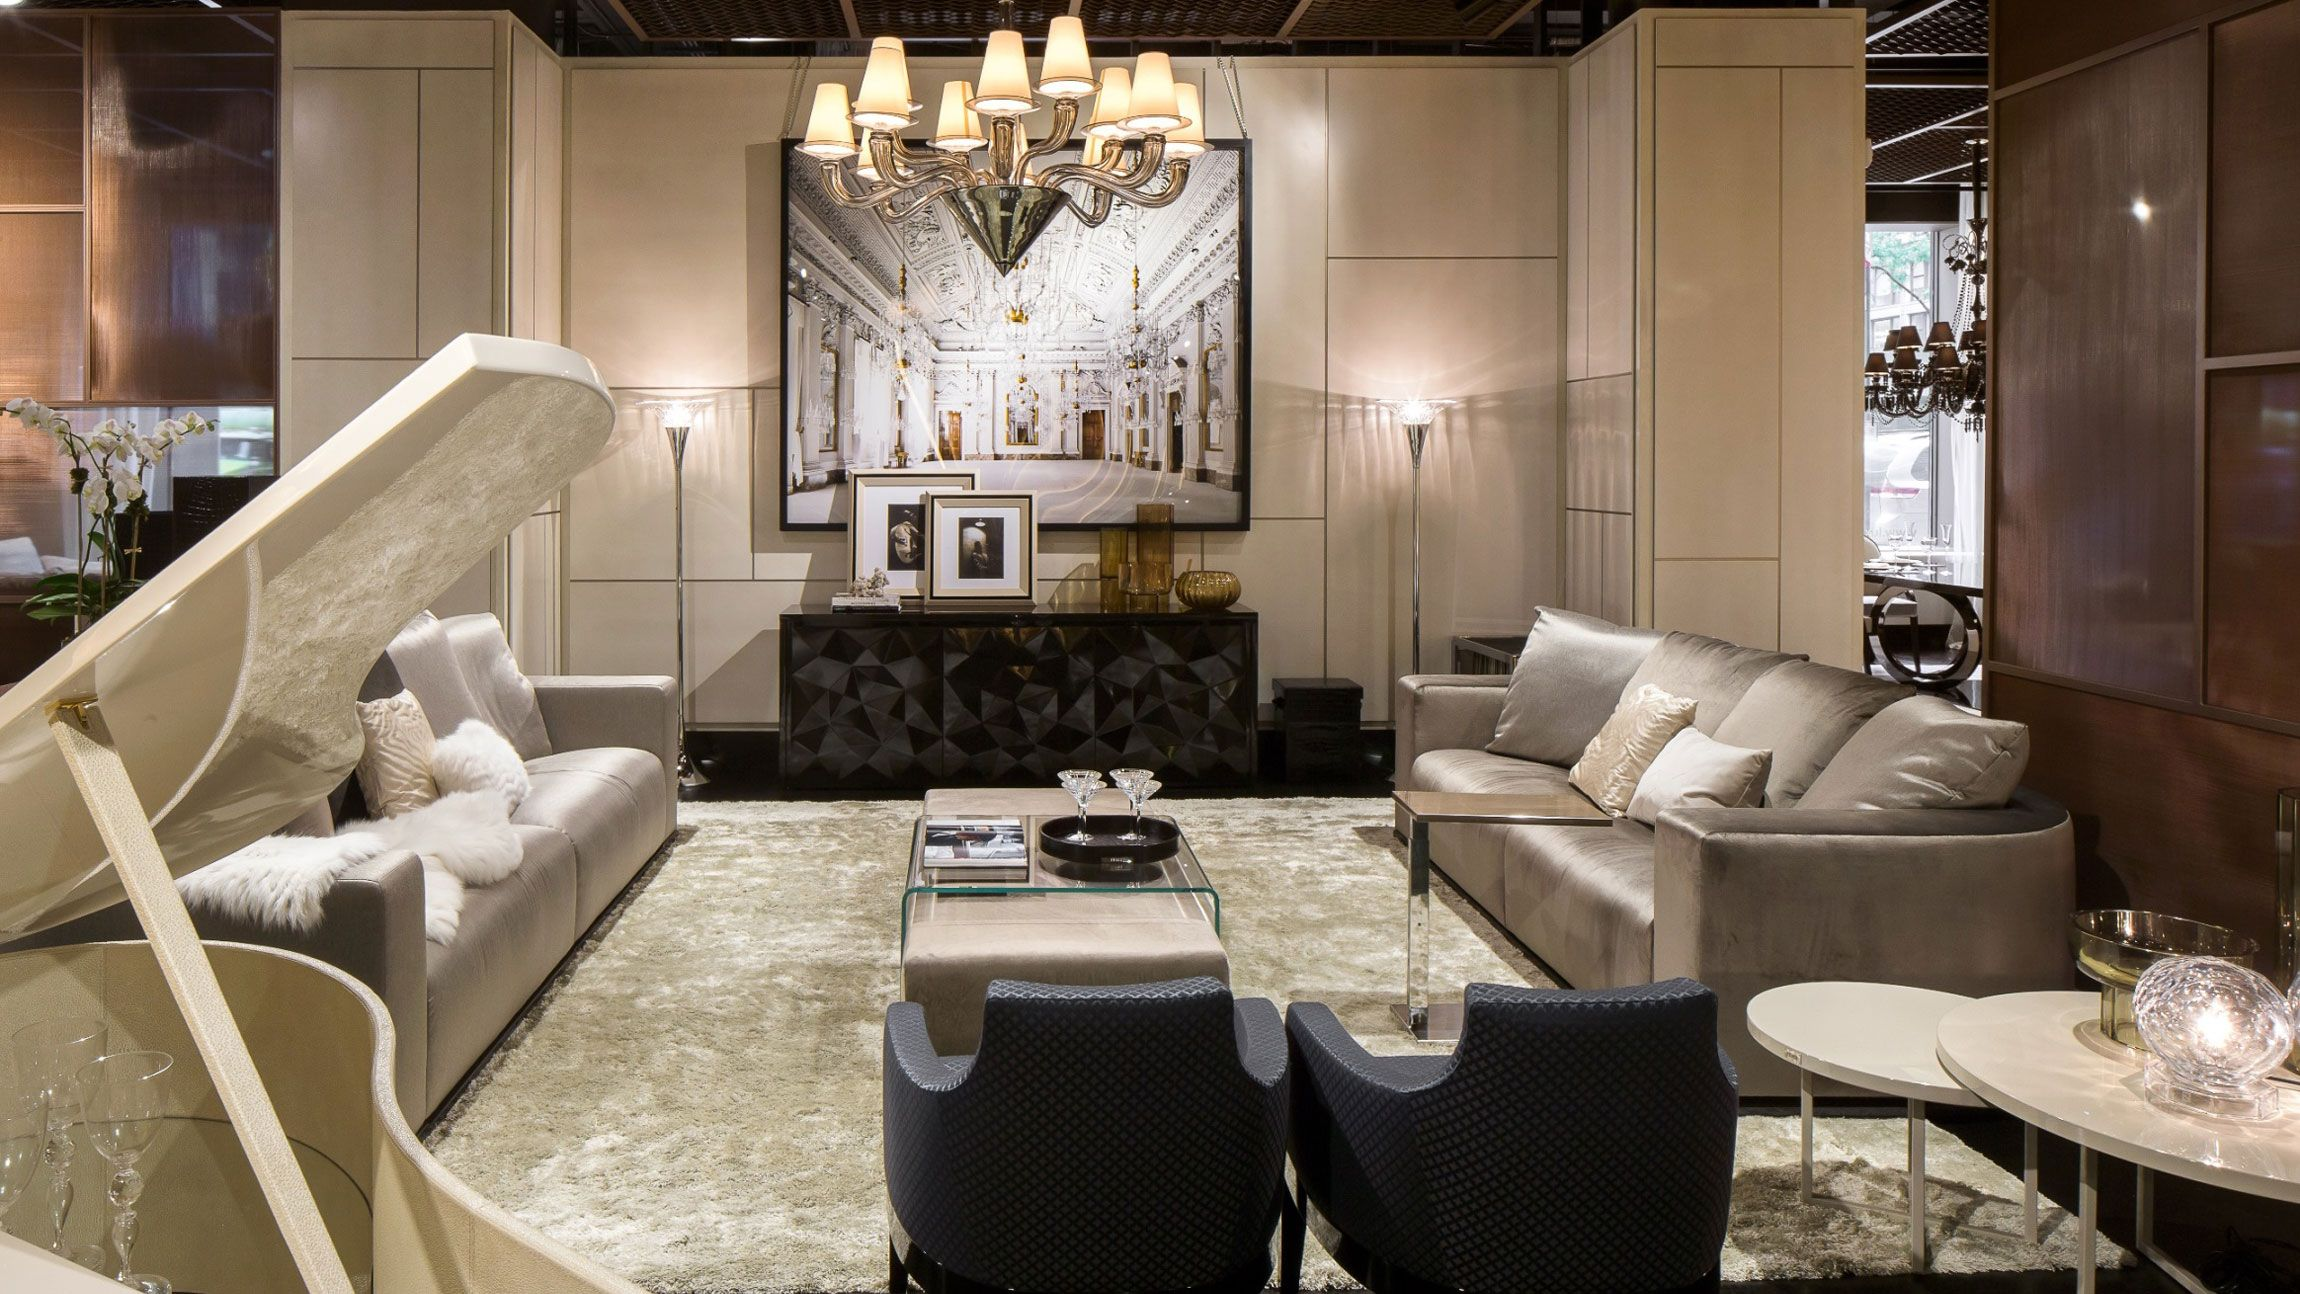 Luxury Living Group, The Italian Lifestyle Company That Produces And  Distributes Furniture Collections For Fendi Casa, Kenzo Maison, Bentley  Home, ...